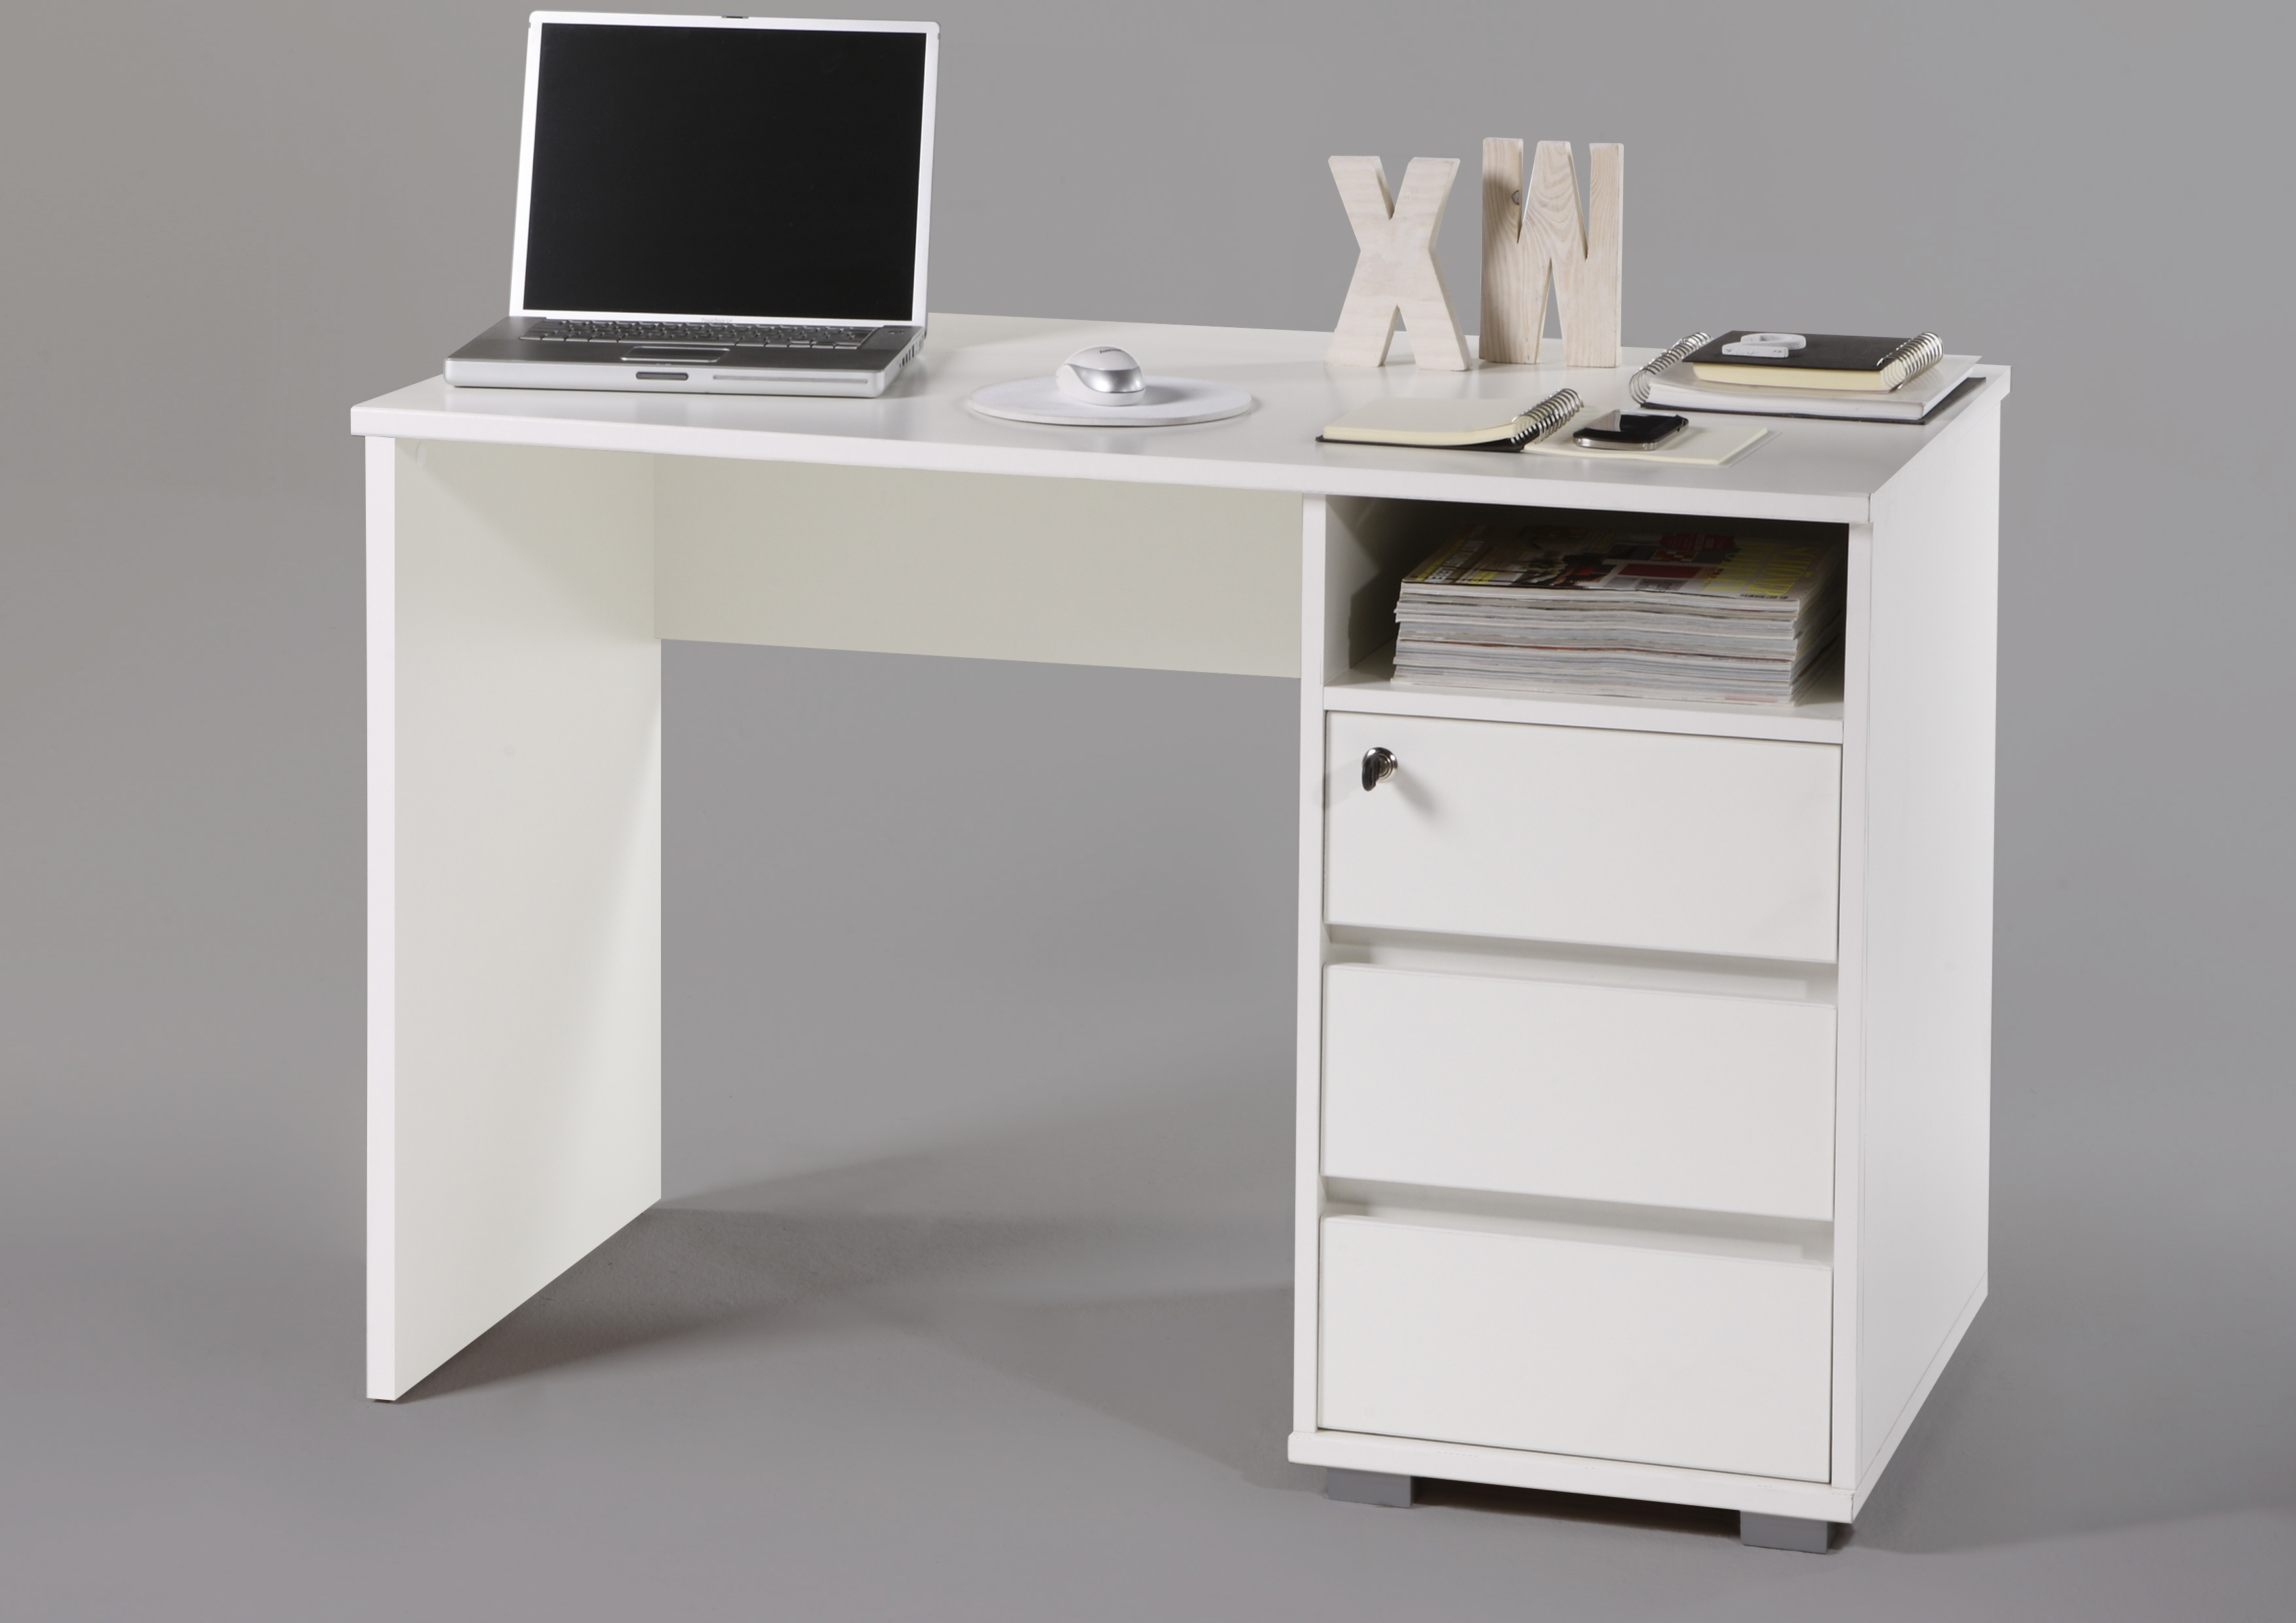 schreibtisch primus pc tisch computertisch home office b ro wei ebay. Black Bedroom Furniture Sets. Home Design Ideas